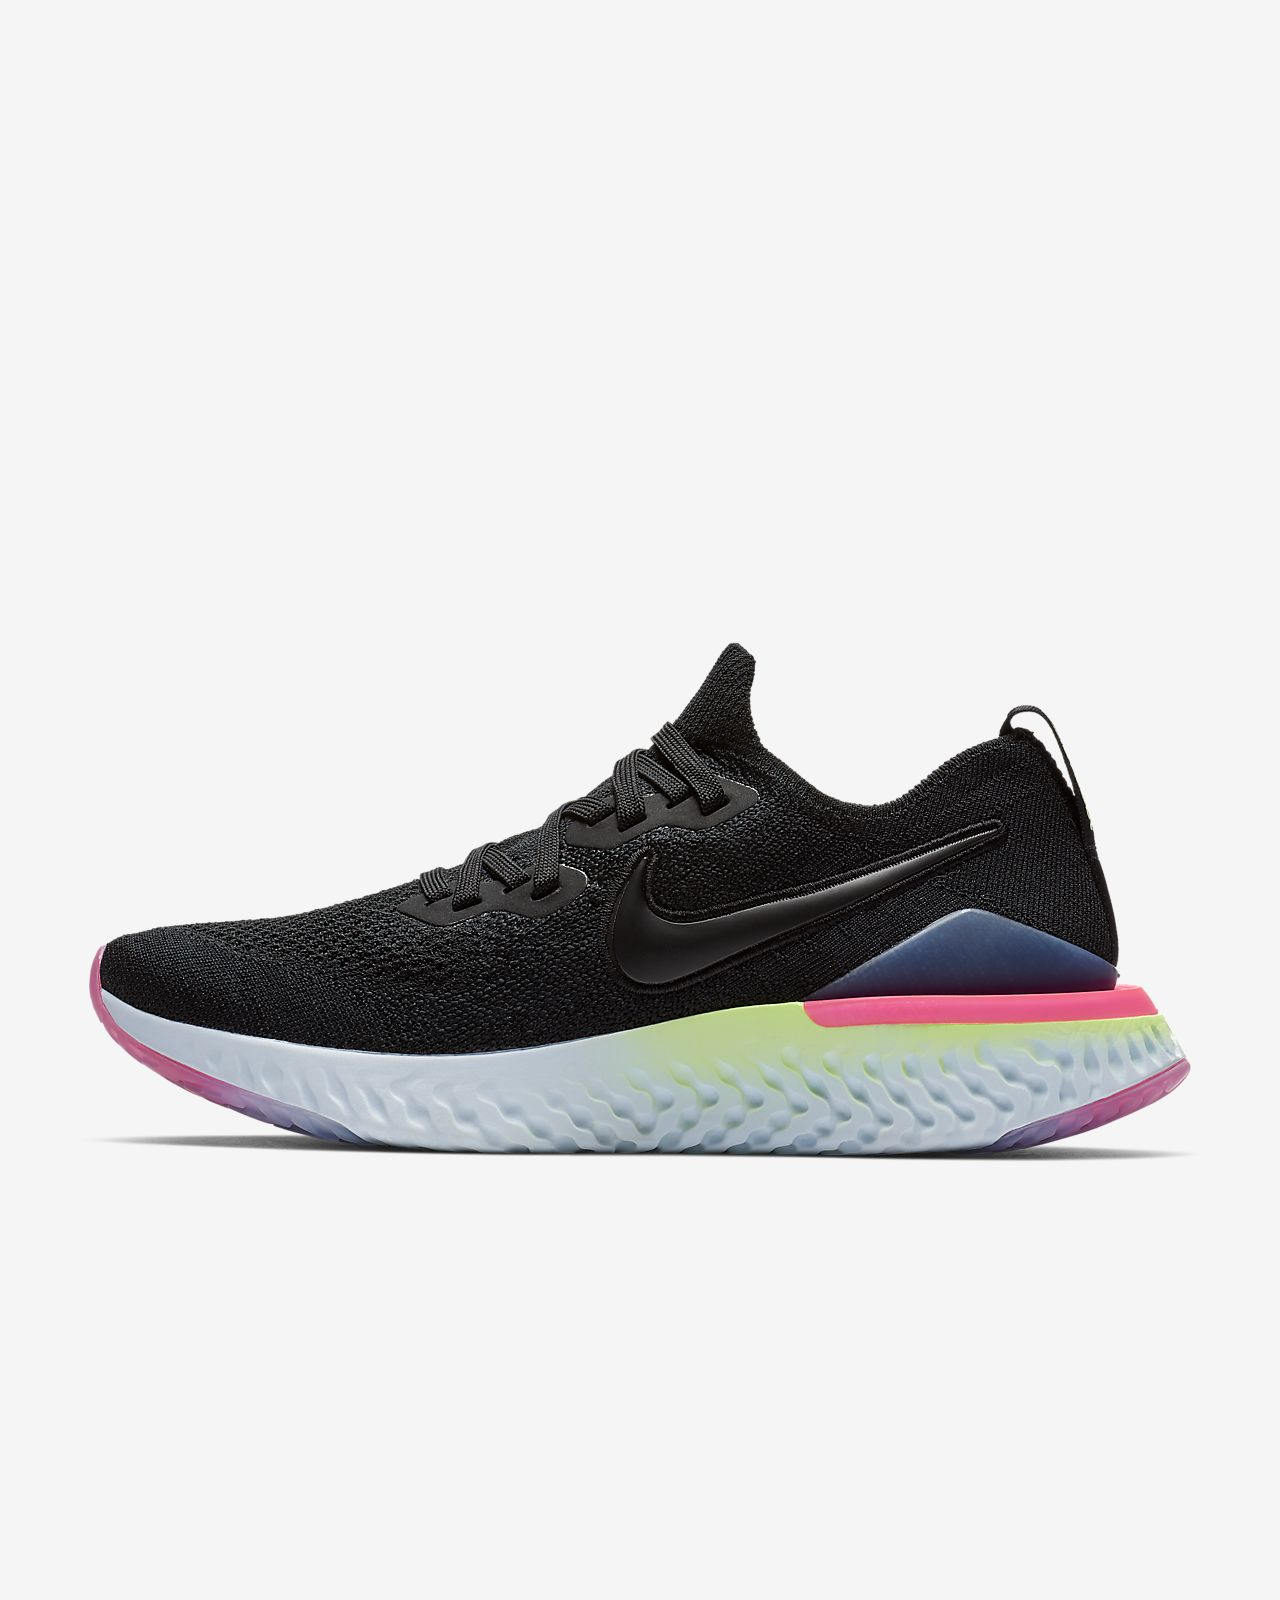 83b22483c657f Low Resolution Nike Epic React Flyknit 2 Women s Running Shoe Nike Epic  React Flyknit 2 Women s Running Shoe